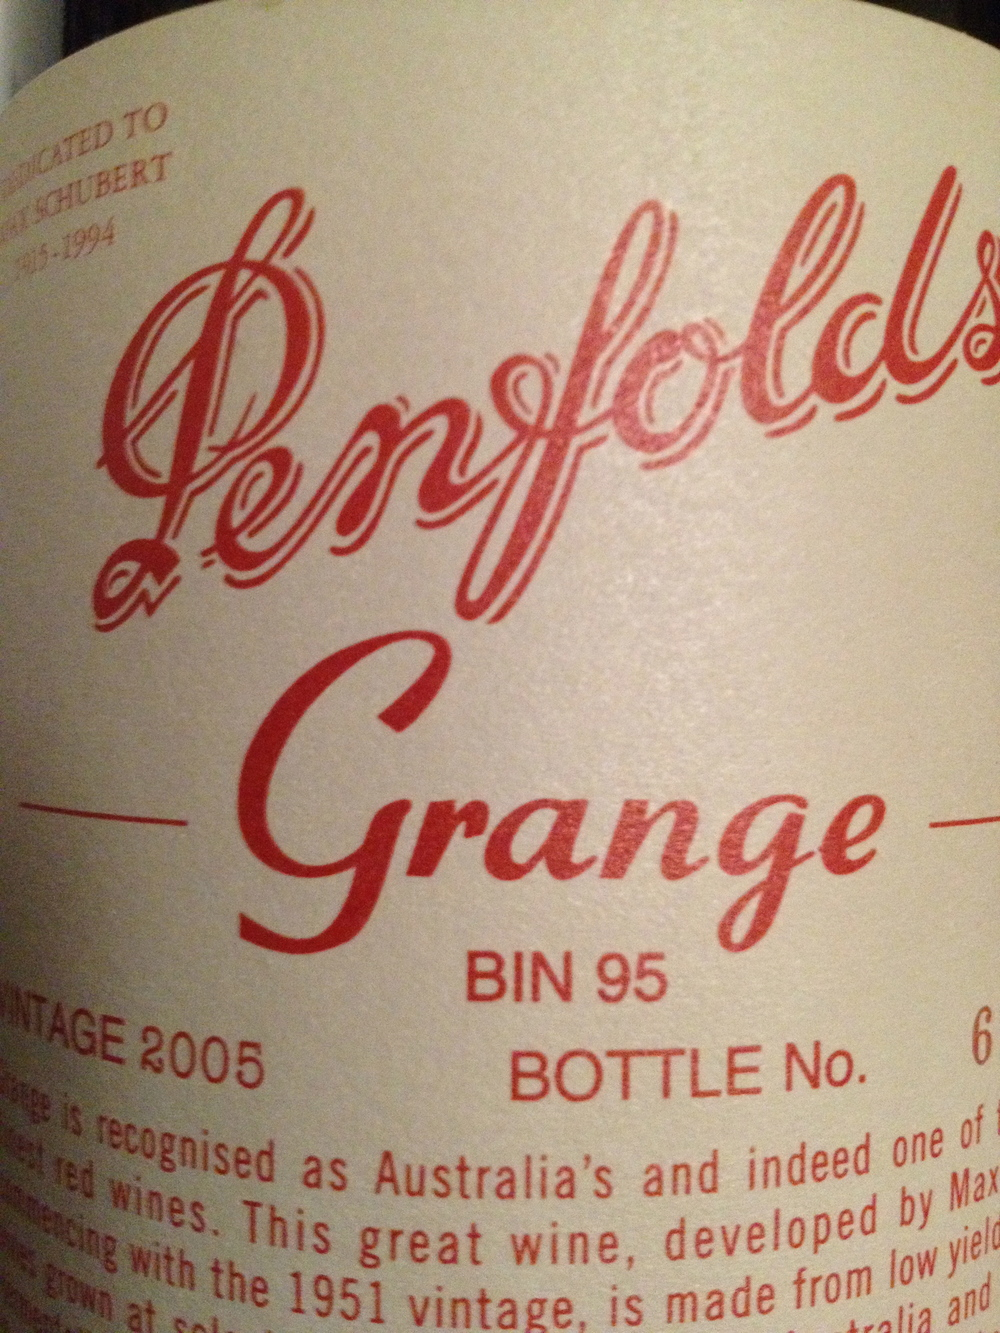 """With representatives of """"Penfold's Grange"""" & """"Hill of Grace"""". Australia's foremost red wine varieties."""